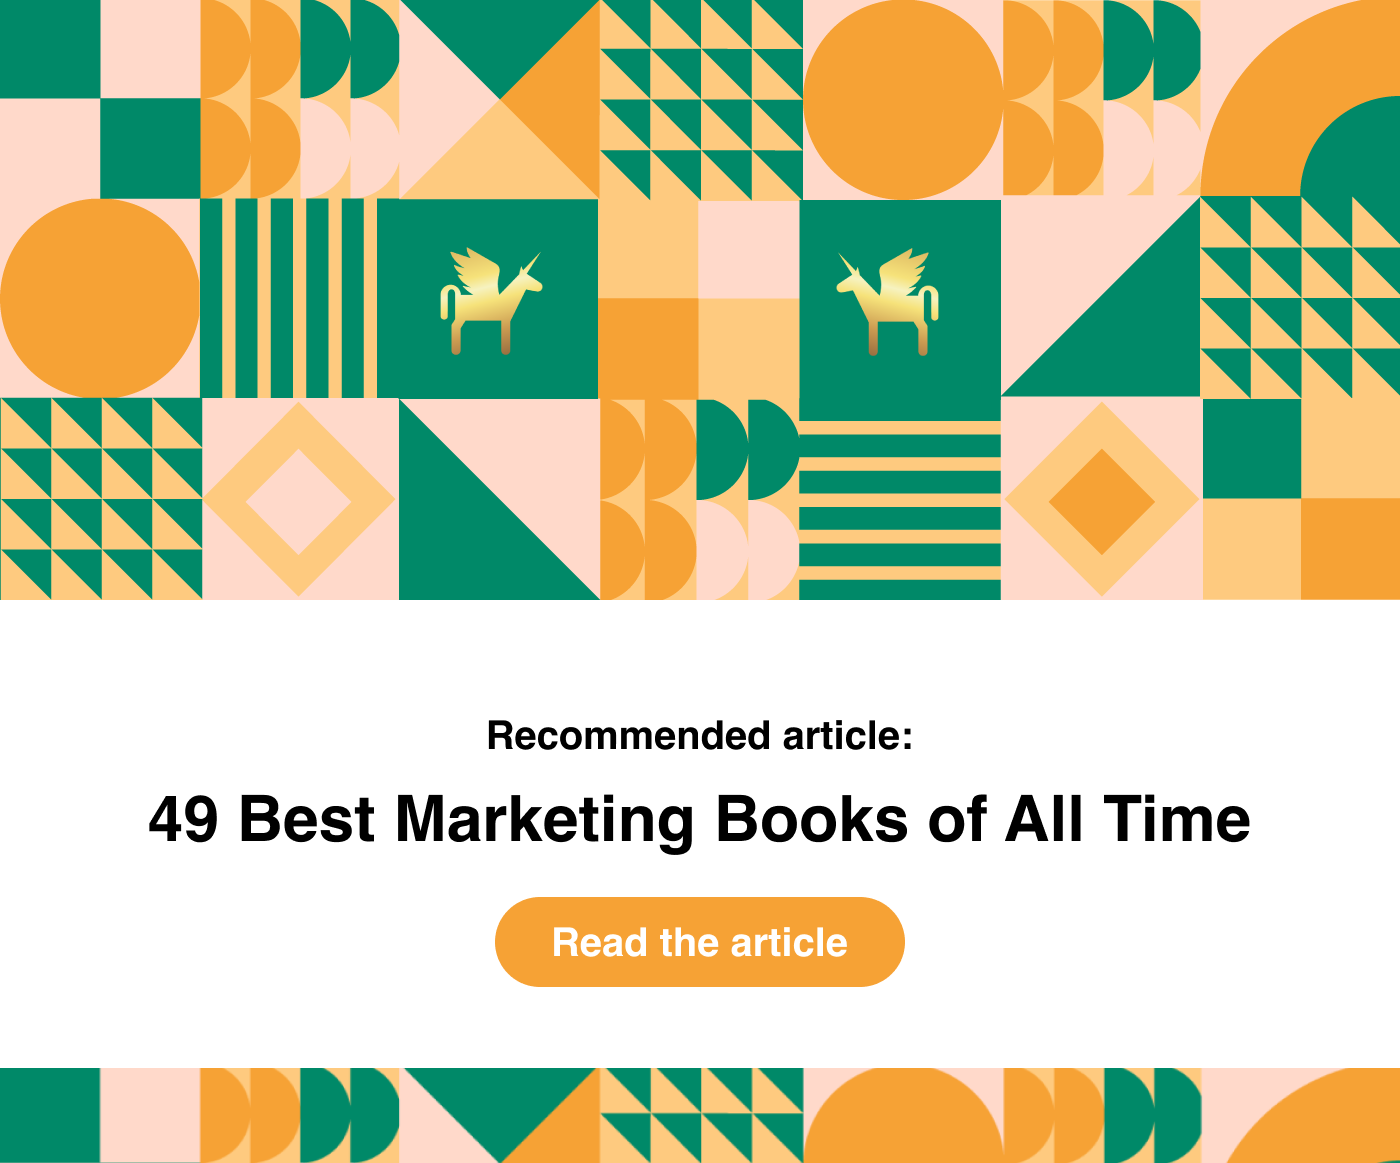 Best marketing books article